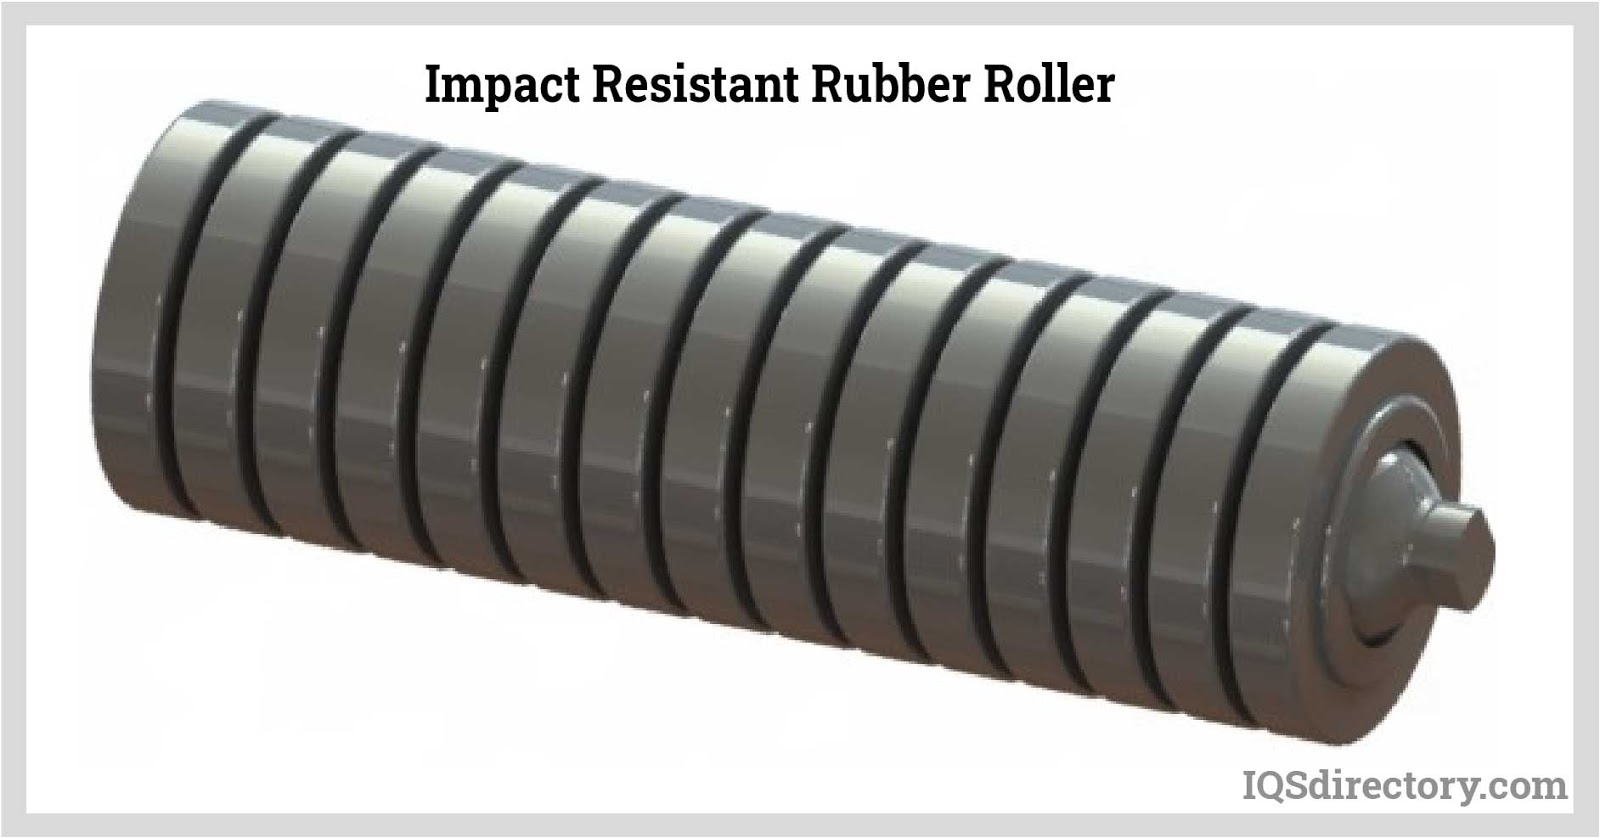 Impact Resistant Rubber Roller